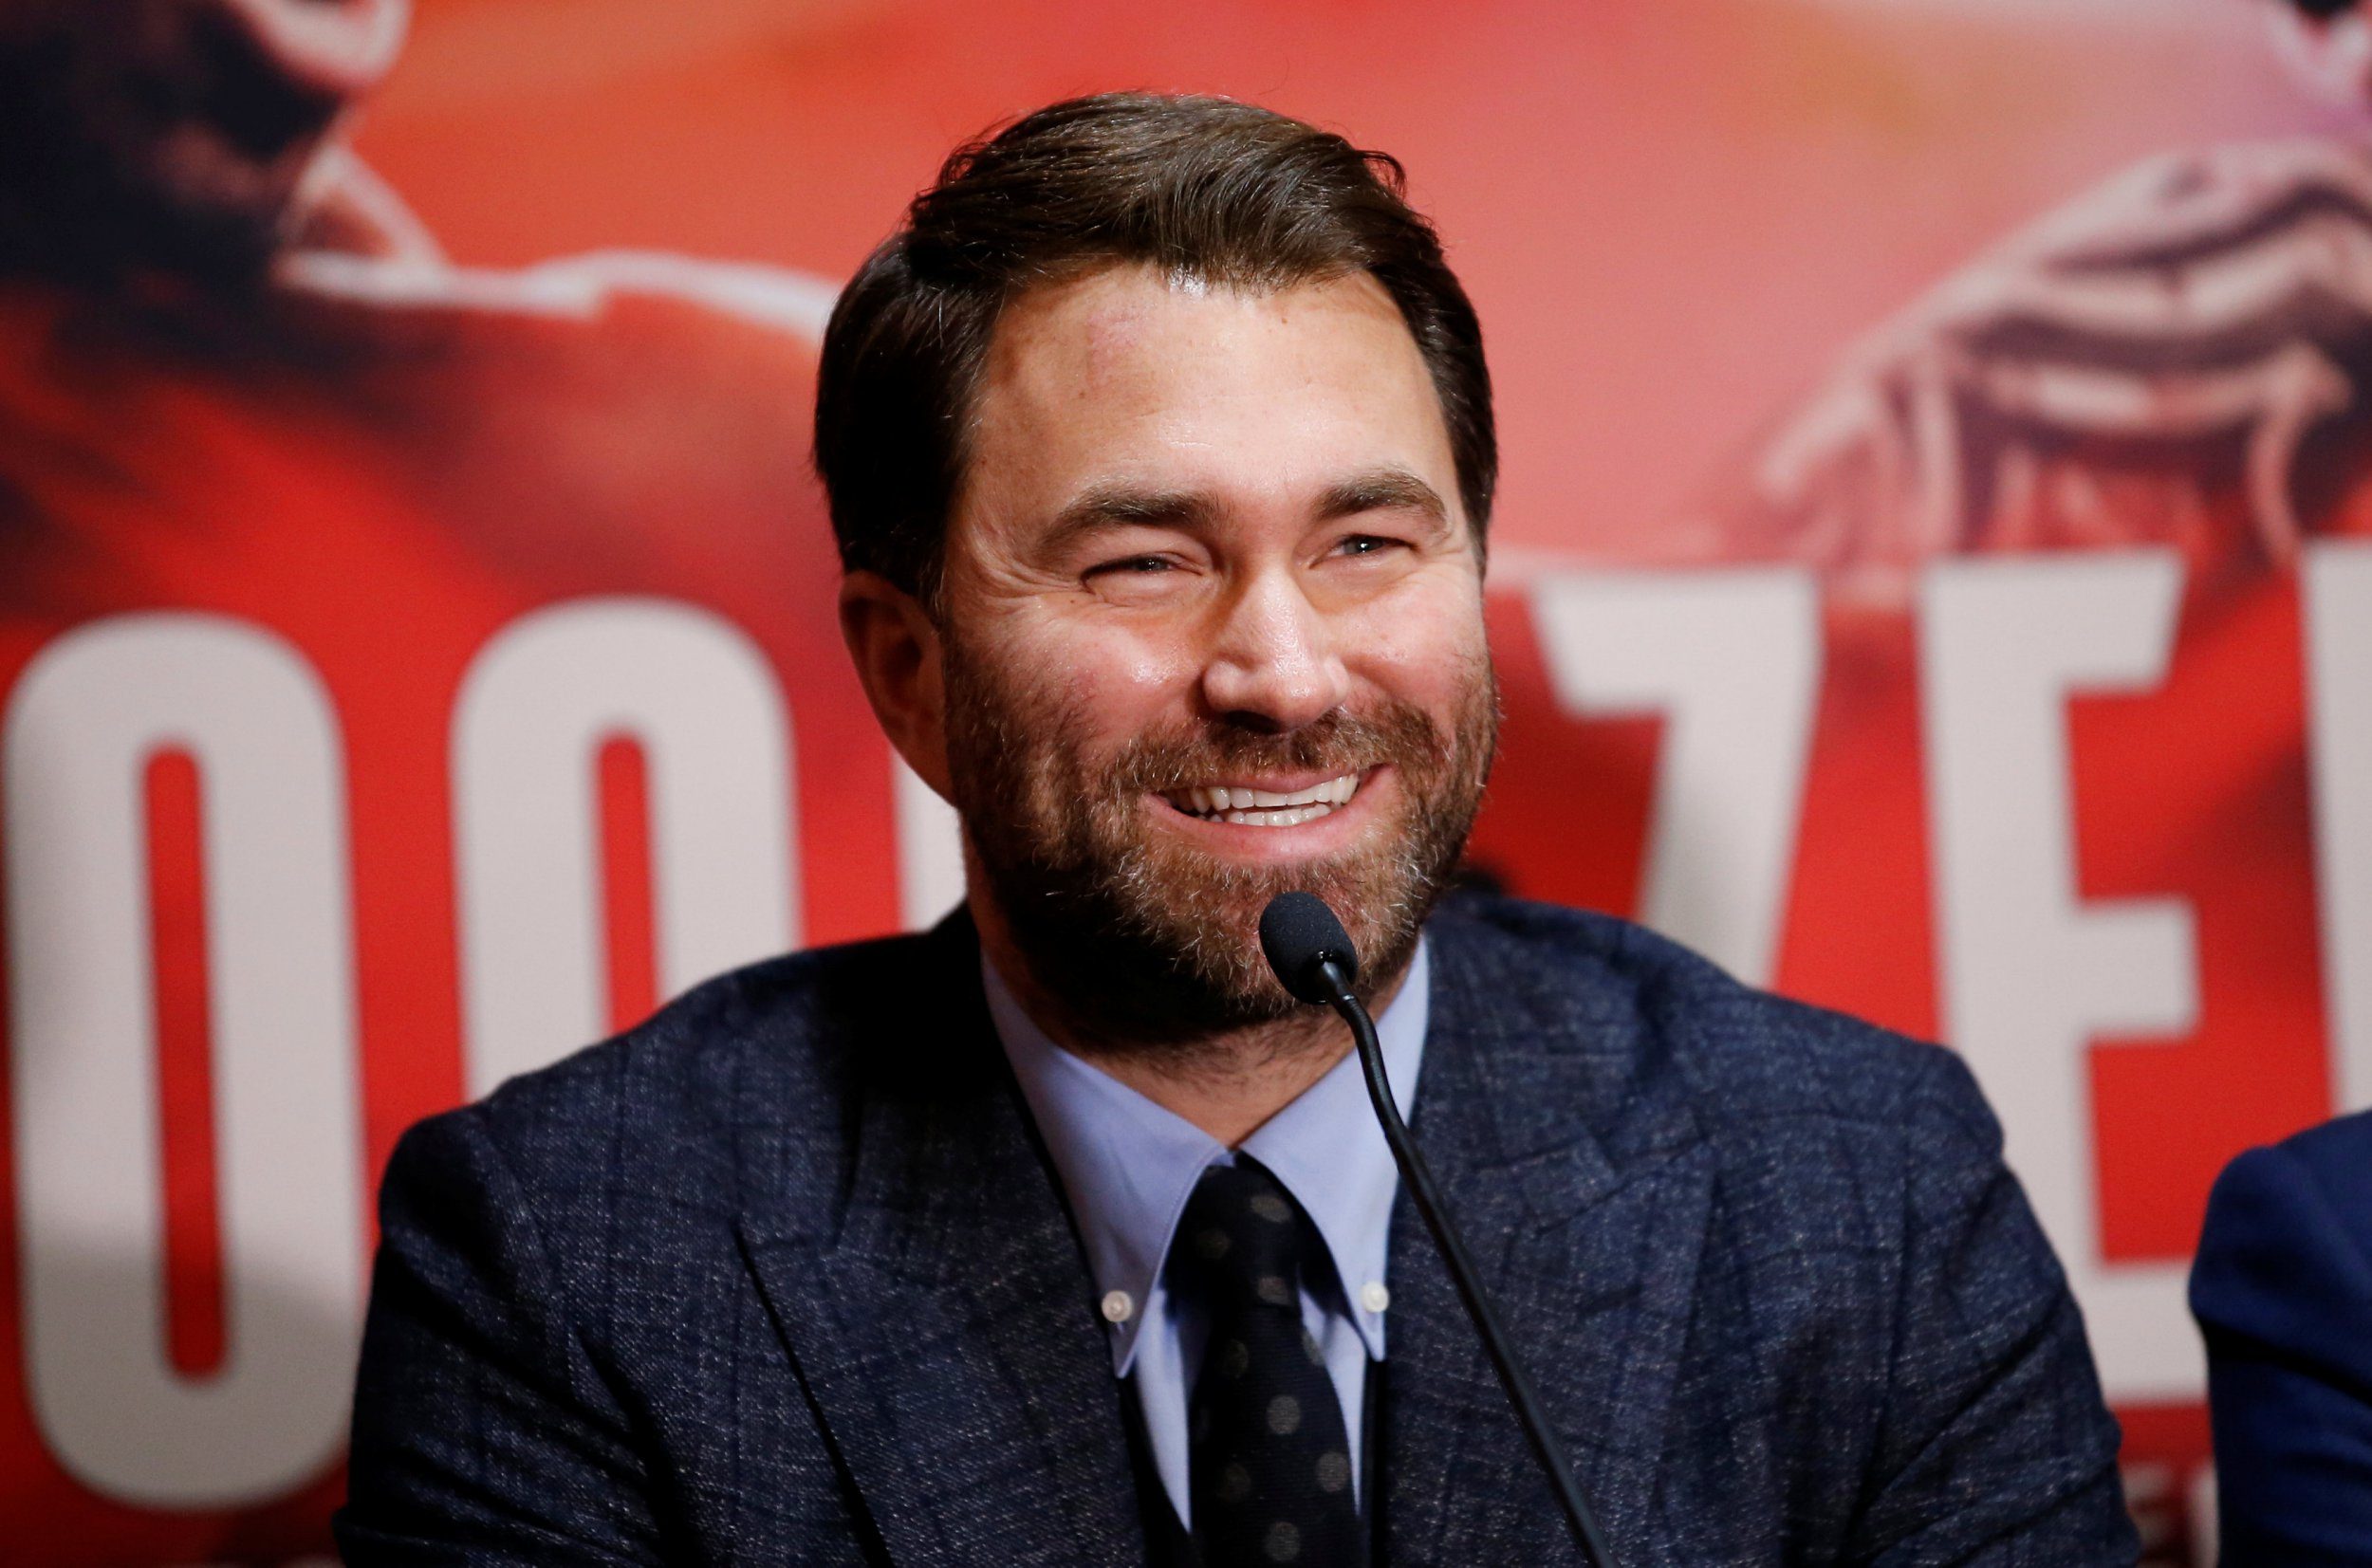 Eddie Hearn will not release details of talks with Deontay Wilder or Tyson Fury